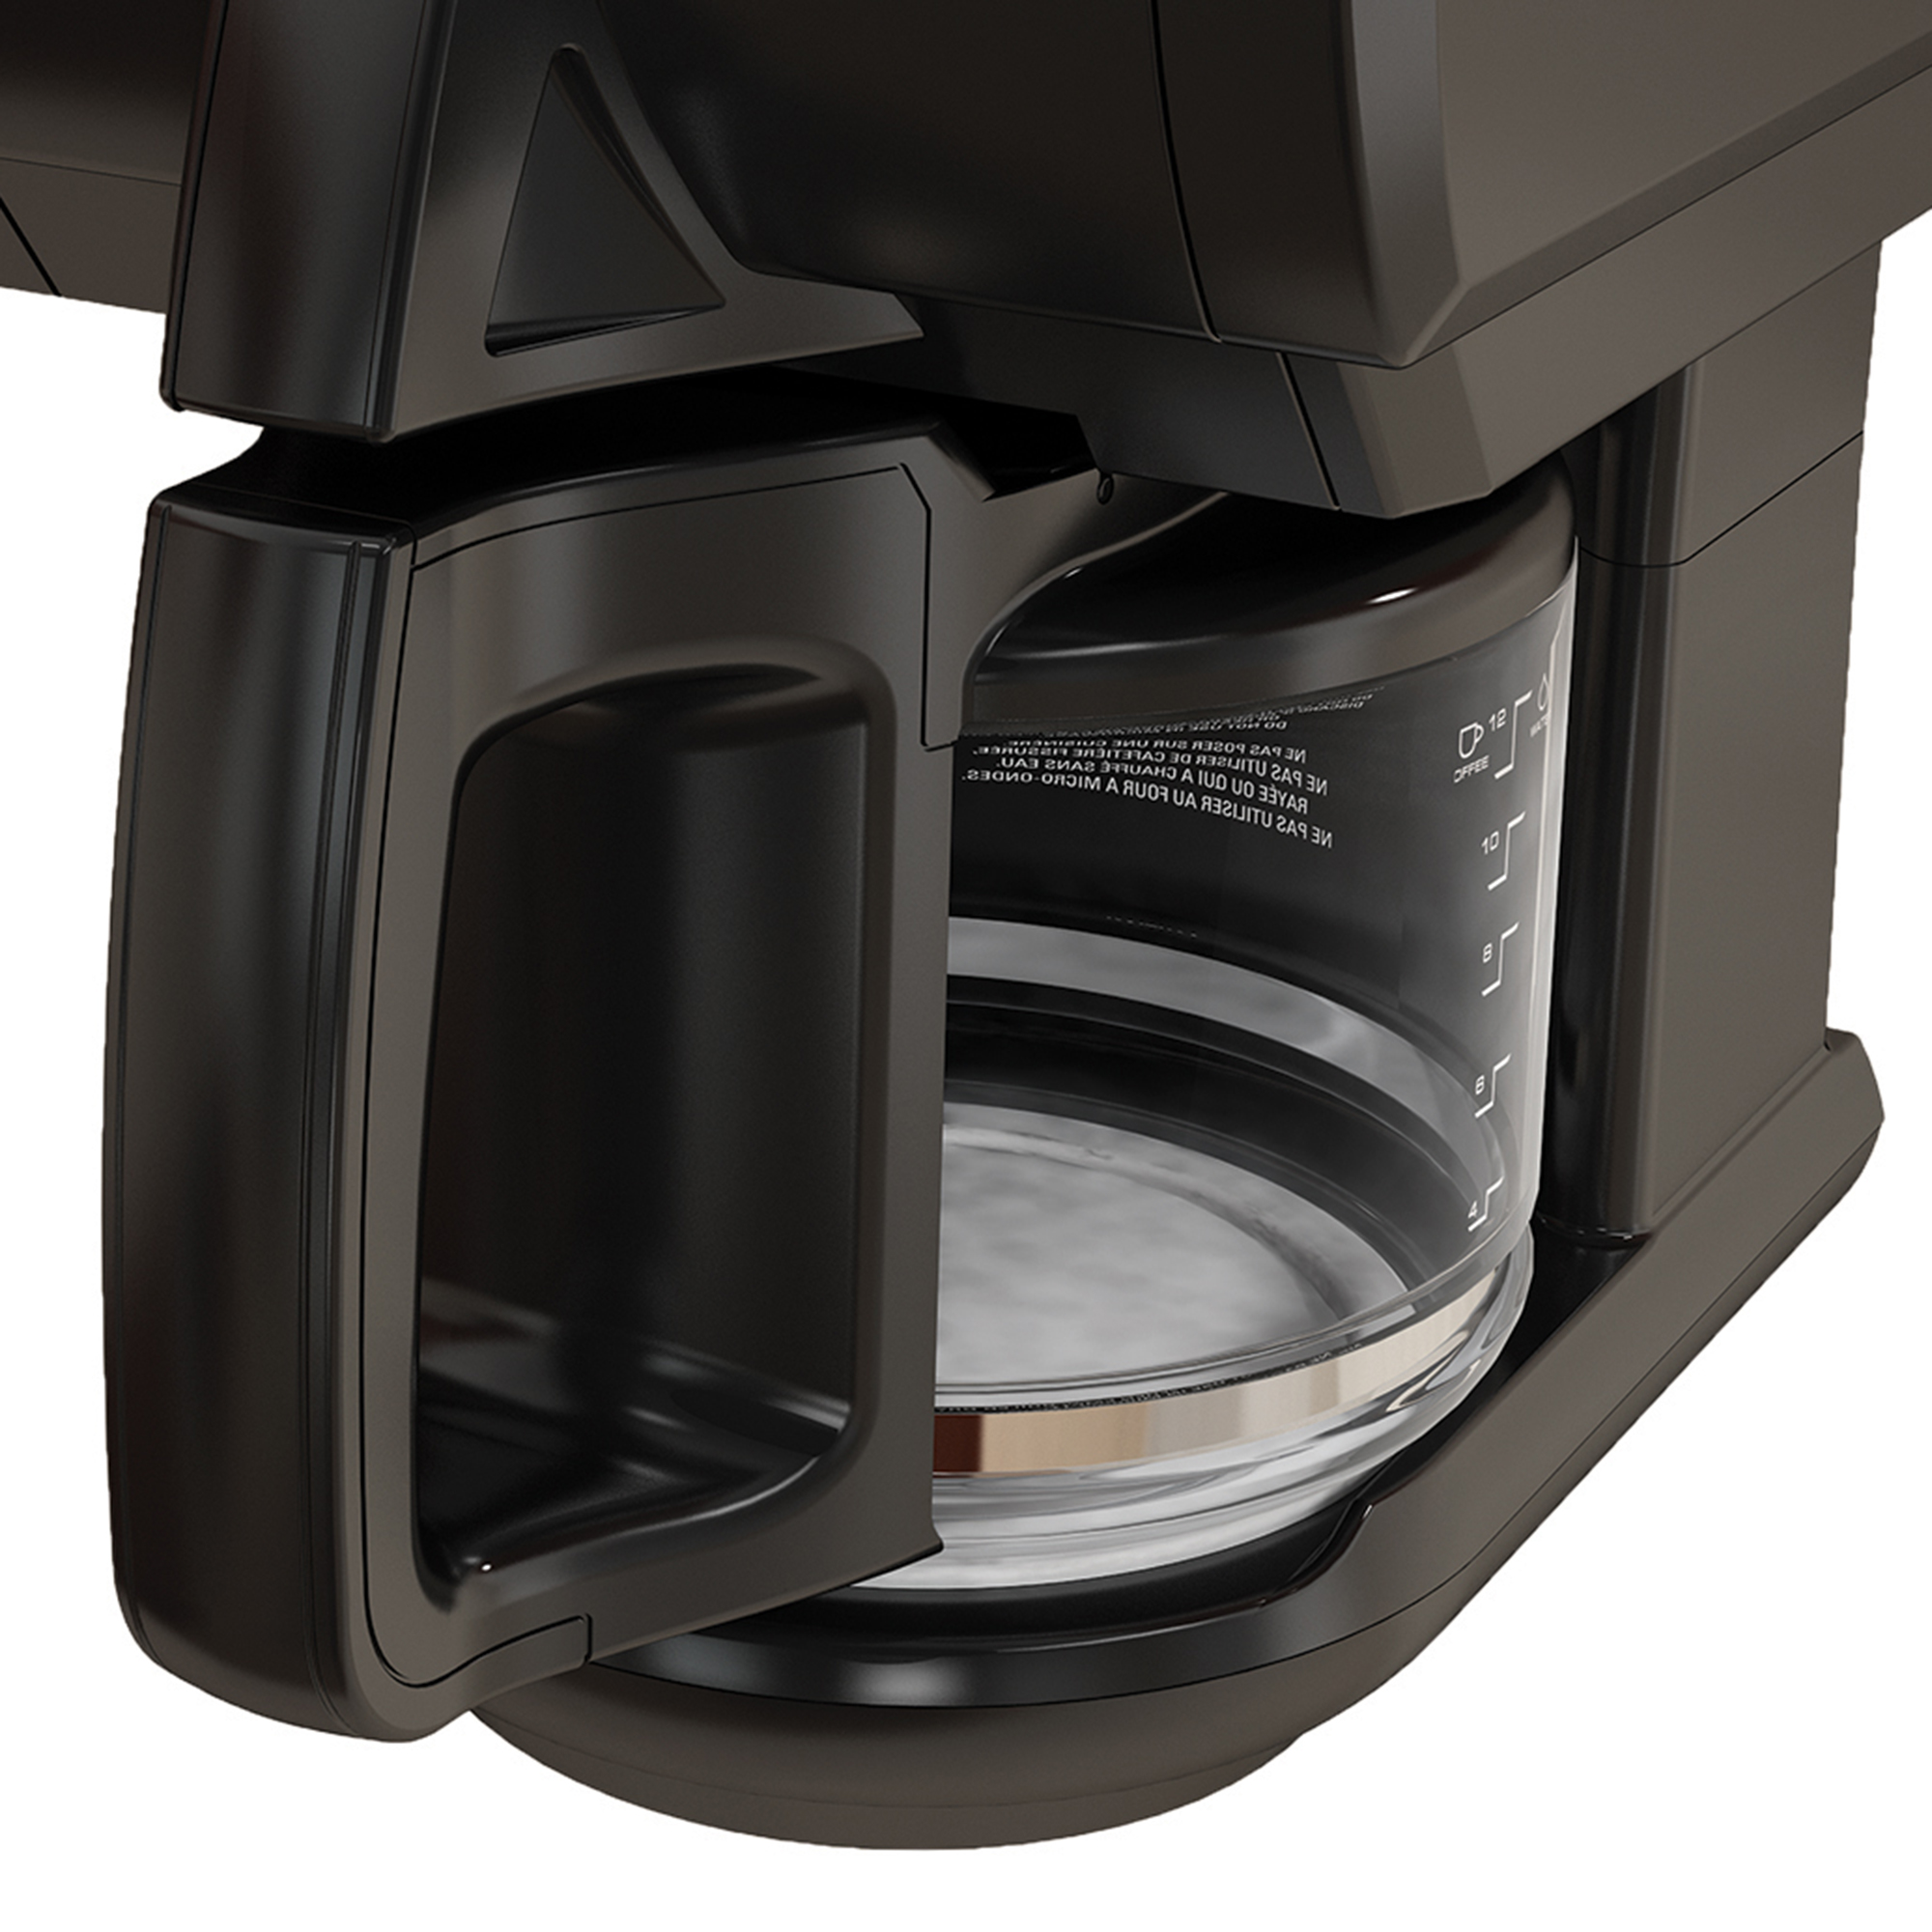 Ge Programmable Coffee Maker Manual : Black And Decker Spacemaker Coffee Maker Small Appliances Home Design Idea